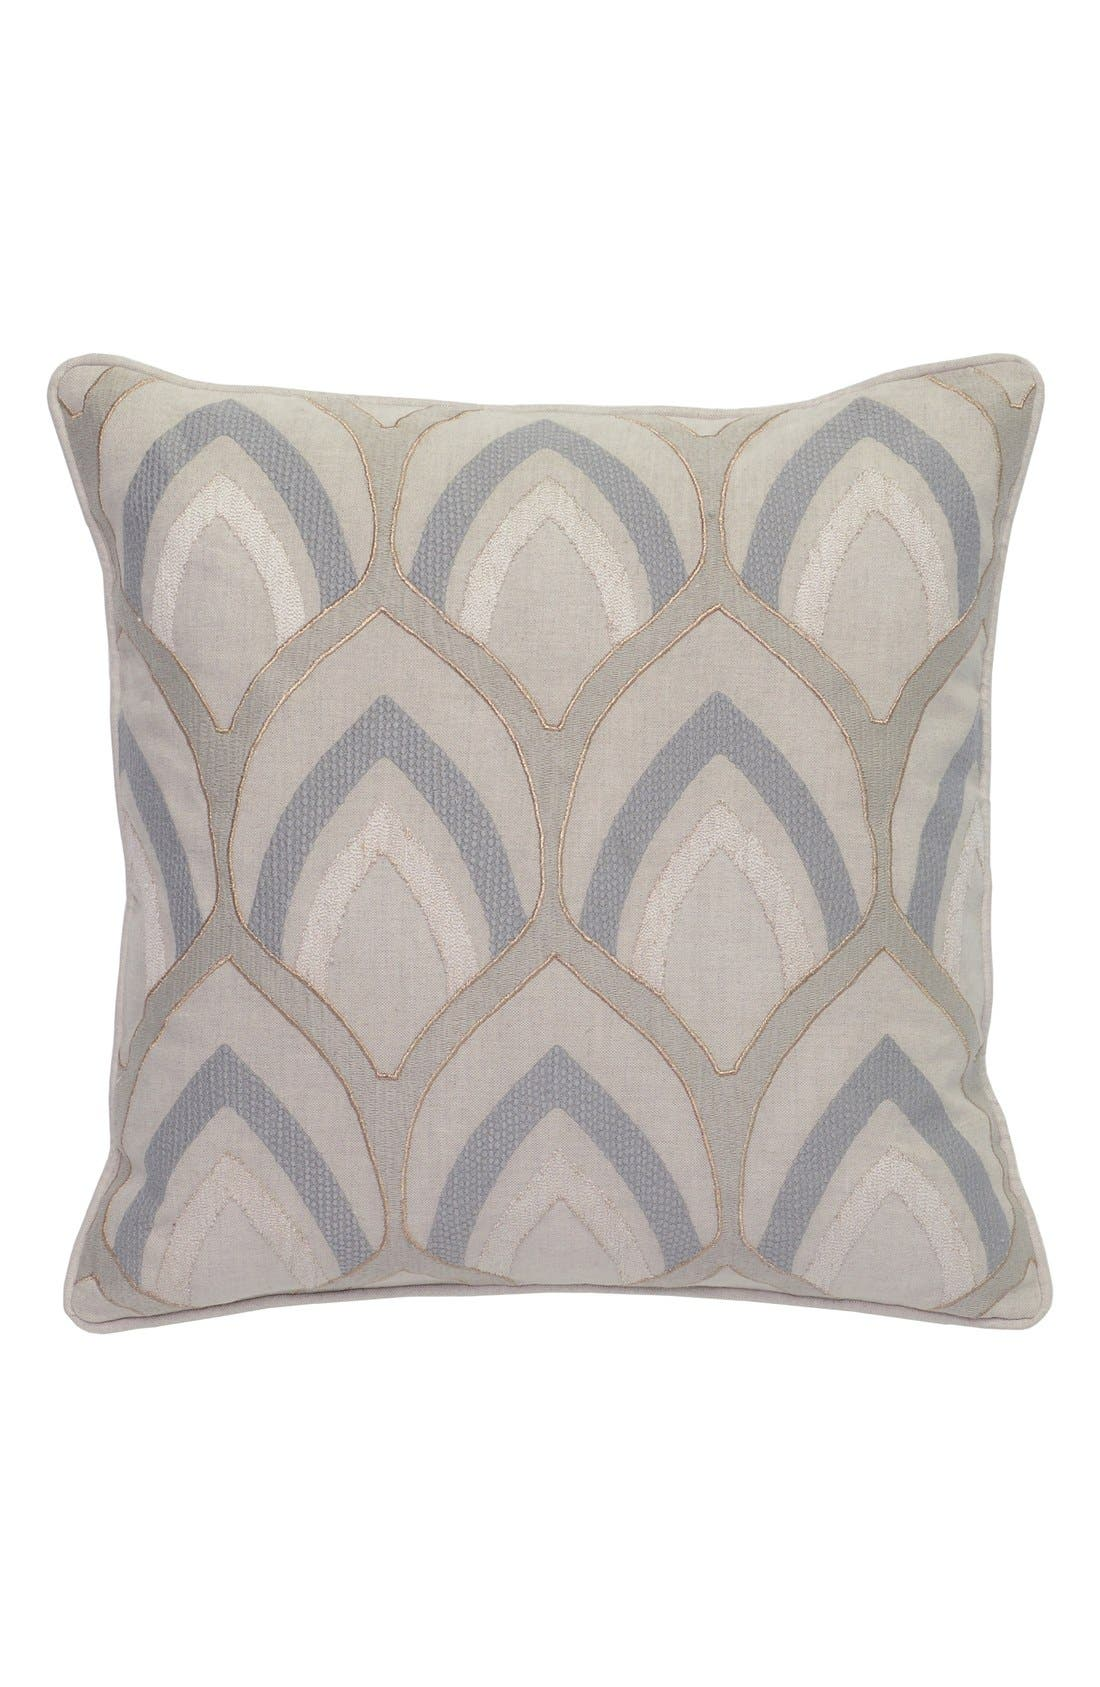 Villa Home Collection 'Hollis' Decorative Pillow